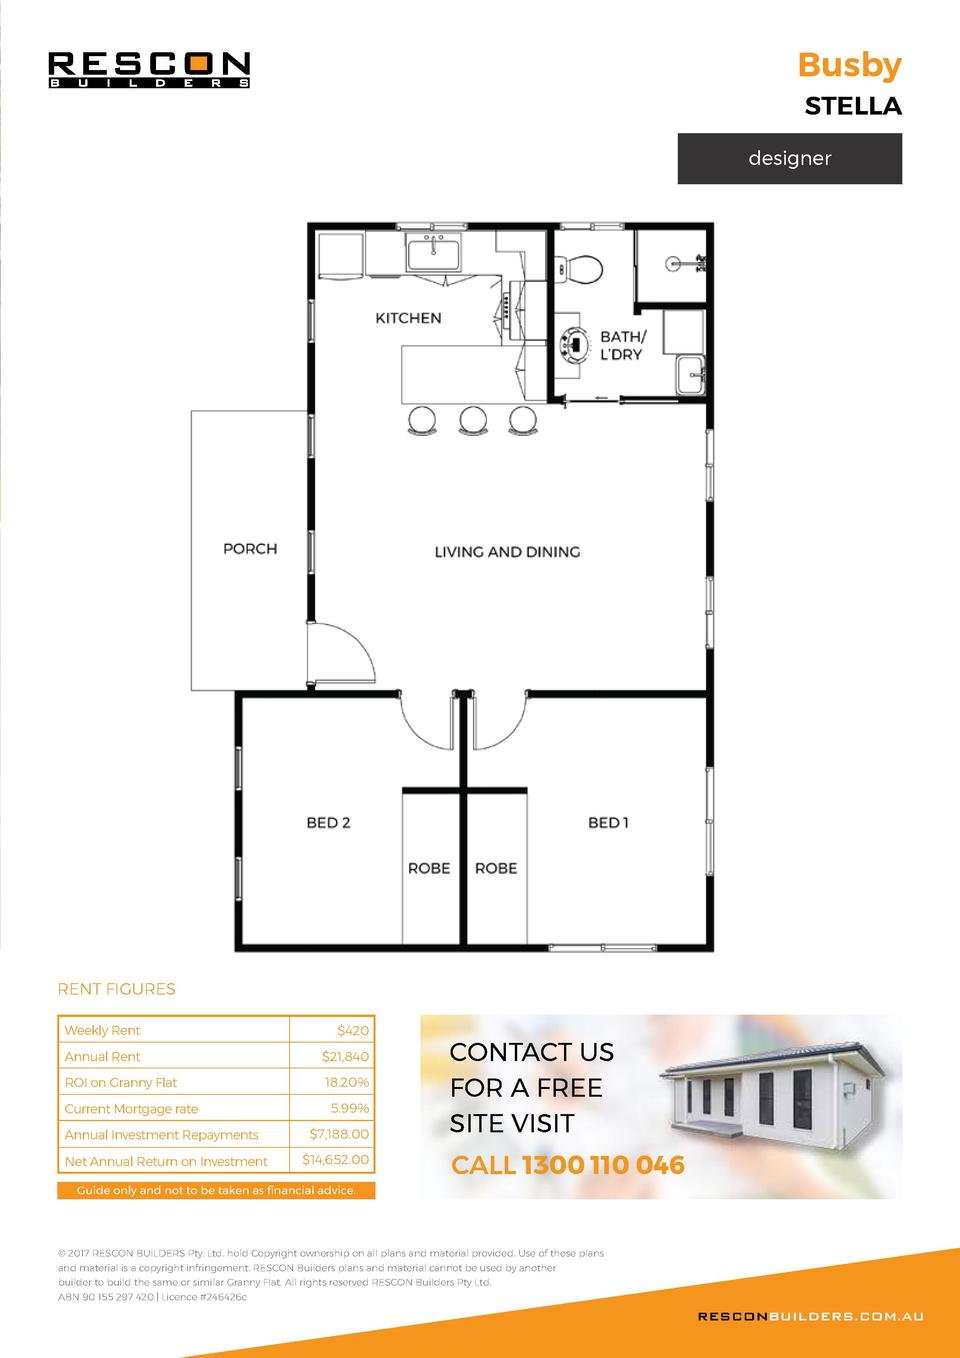 Busby  STELLA  designer  RENT FIGURES Weekly Rent   420  Annual Rent   21,840  ROI on Granny Flat  18.20   Current Mortgag...